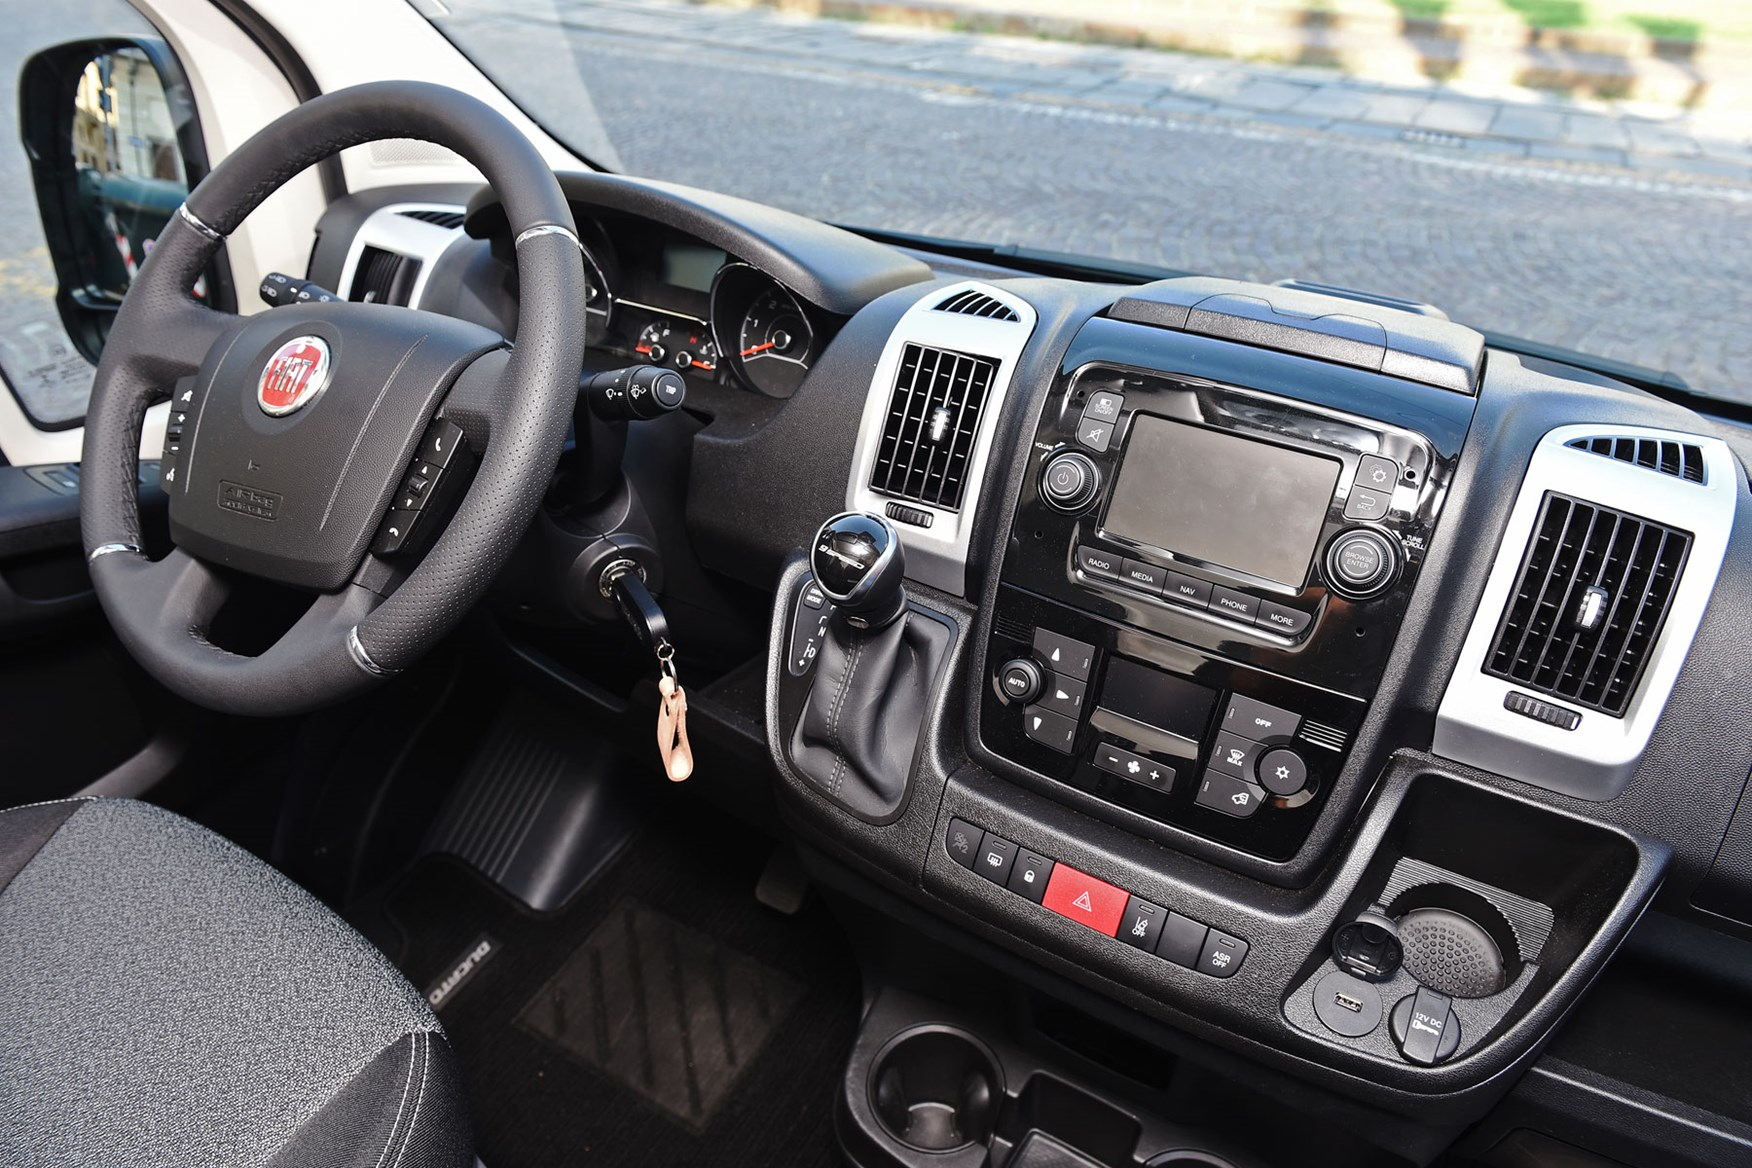 Fiat Ducato review - 2019 MY20 cab interior, infotainment